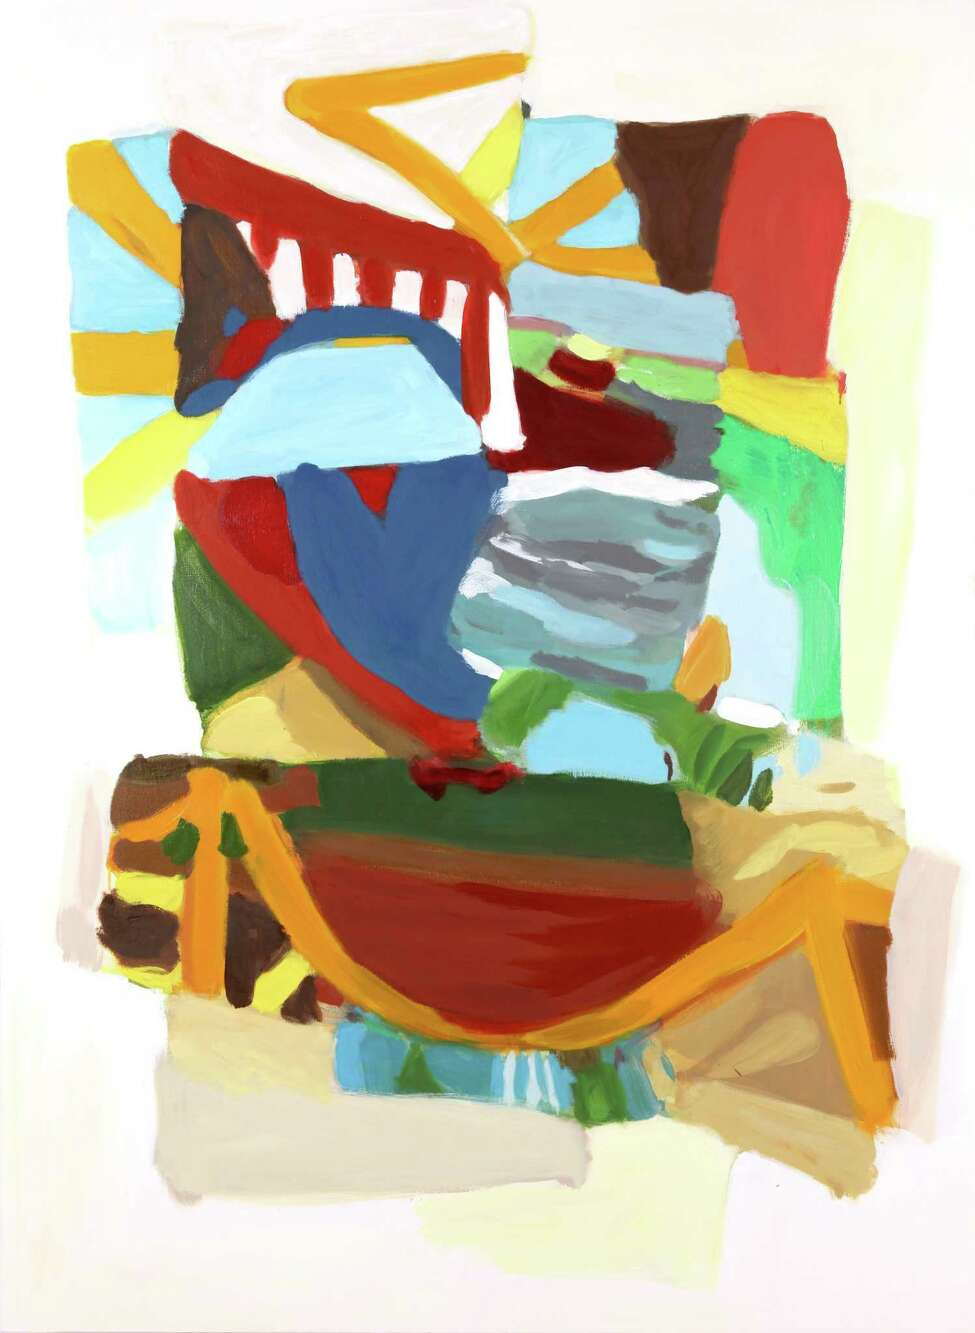 Nicole Parcher, Rock Me Baby, 2014, oil on canvas, 54 x 30 inches, courtesy of the artist